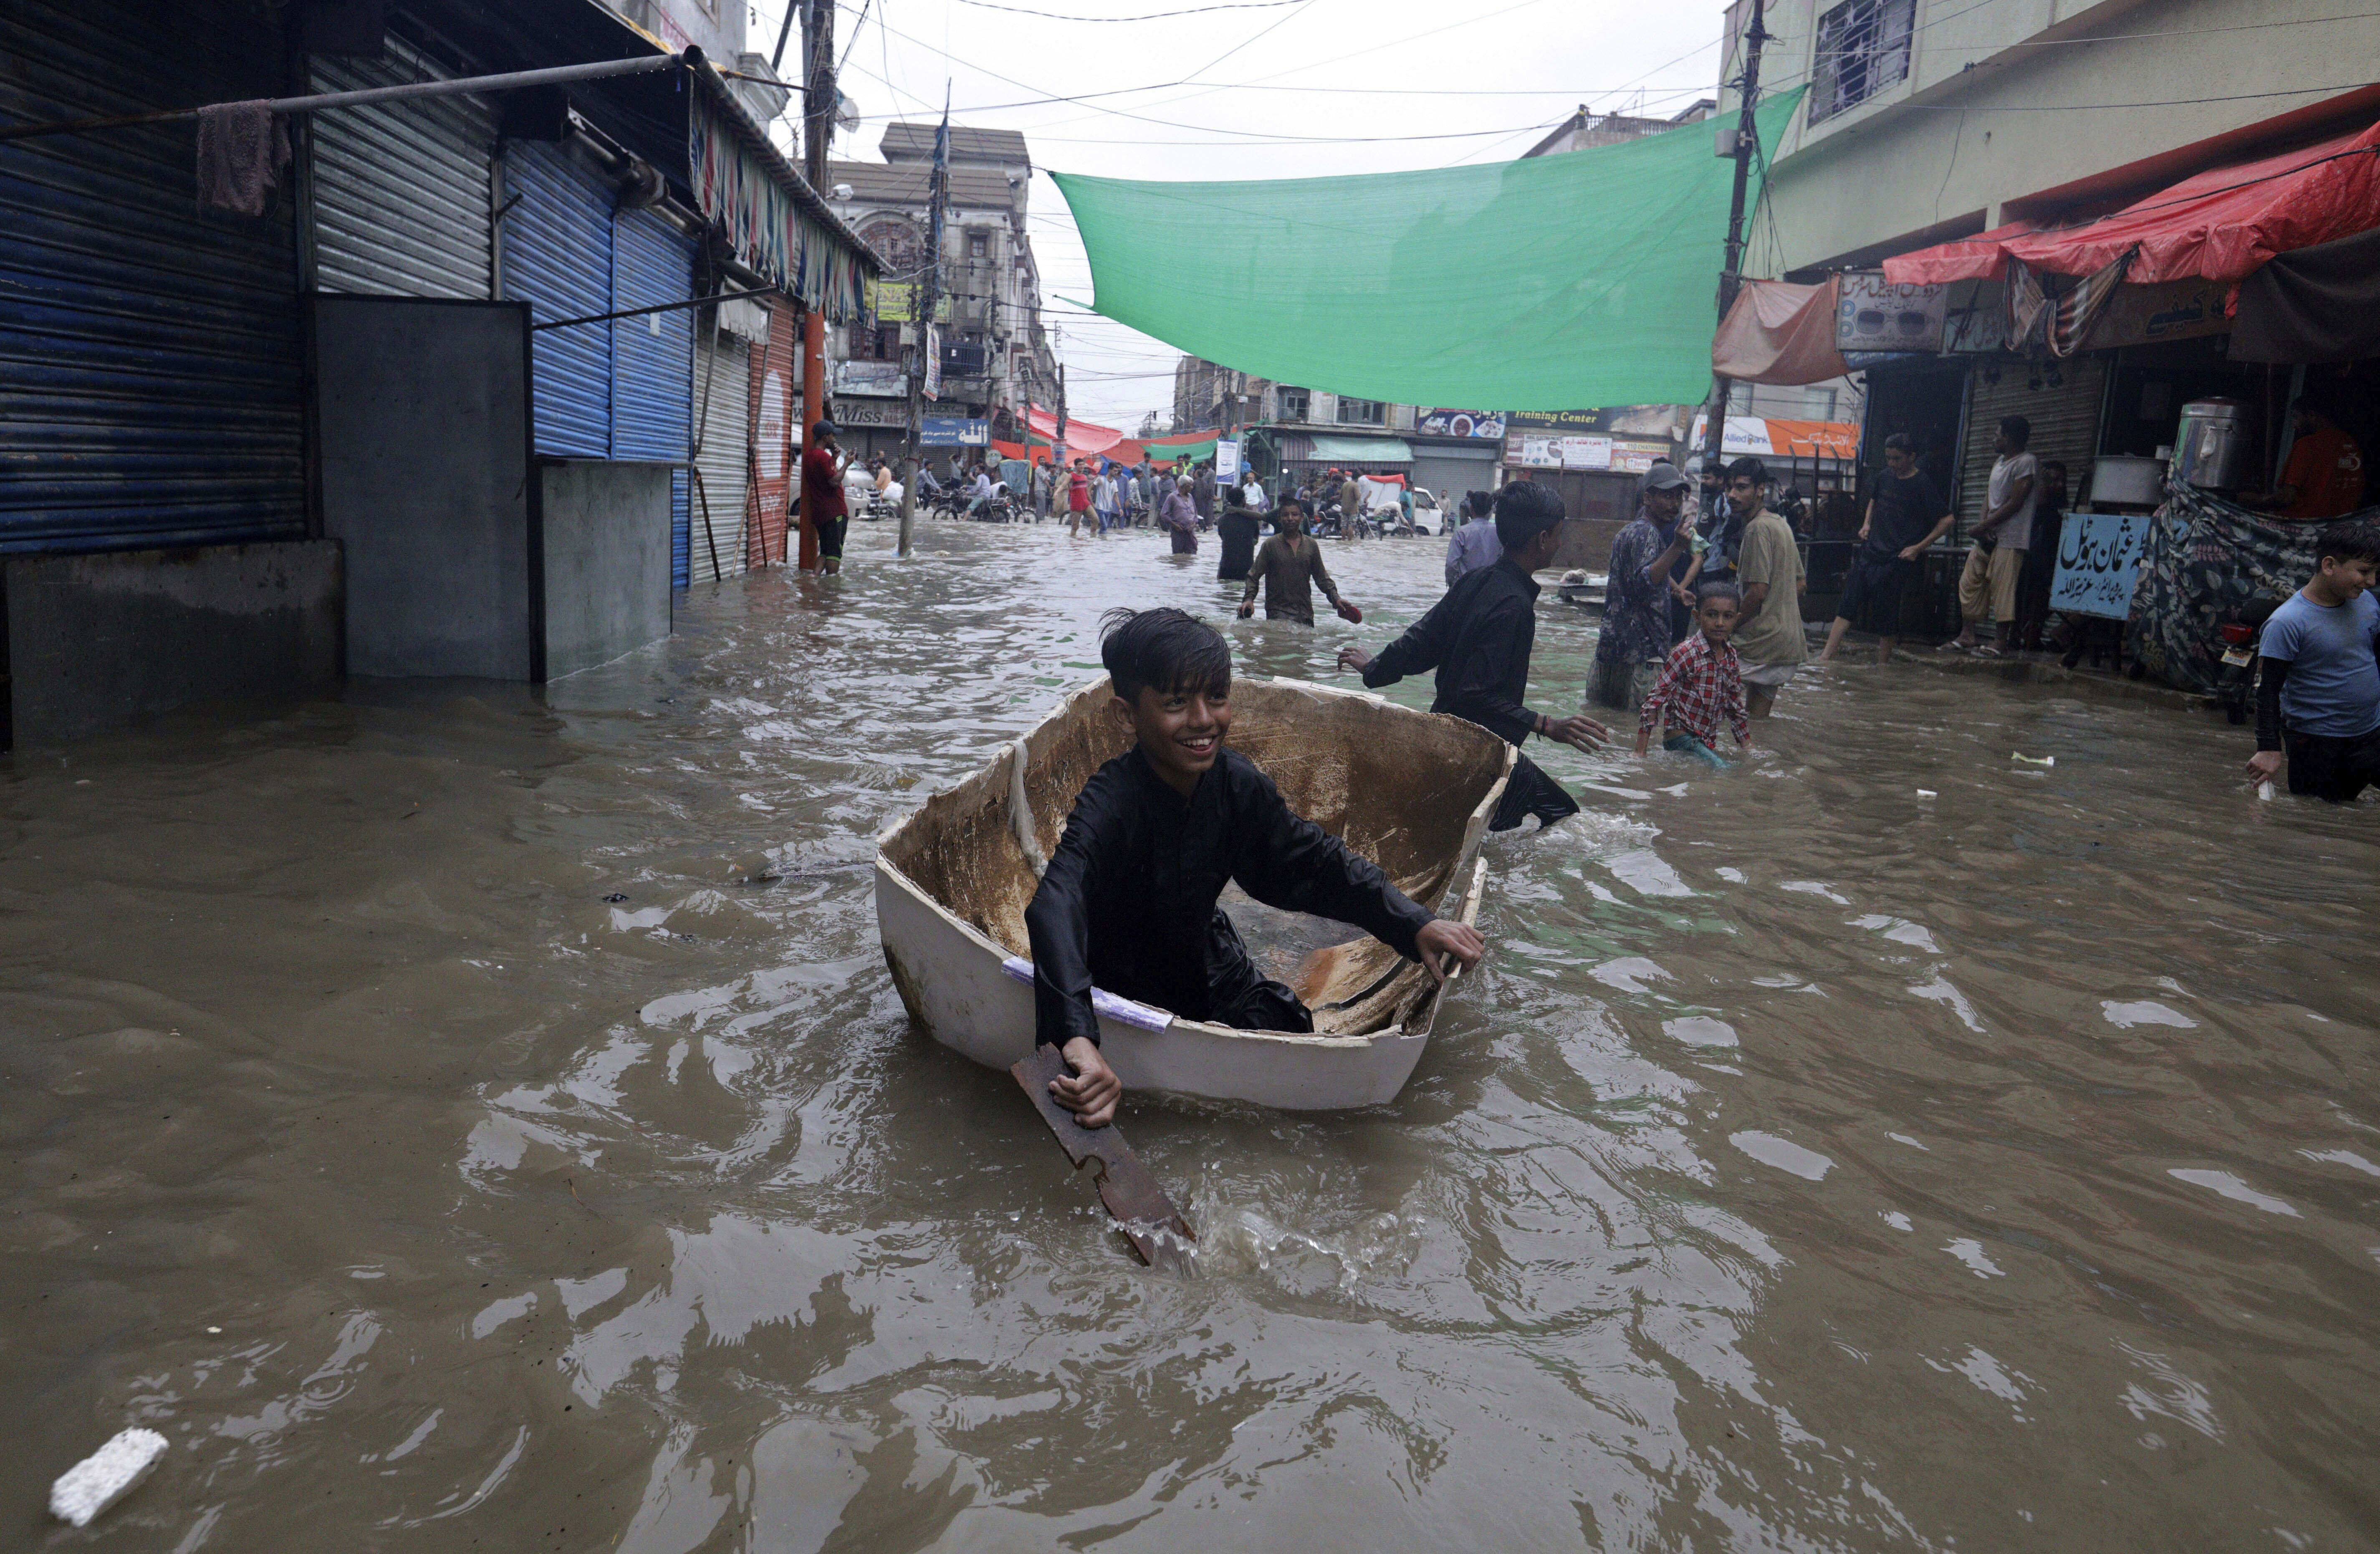 A boy uses half of a fiber tank to navigate a flooded street after heavy monsoon rains, in Karachi, Pakistan, Thursday, Aug. 27, 2020. Heavy monsoon rains have lashed many parts of Pakistan as well the southern port city of Karachi, leaving flooding streets, damaging homes and displacing scores of people. (AP Photo/Fareed Khan)